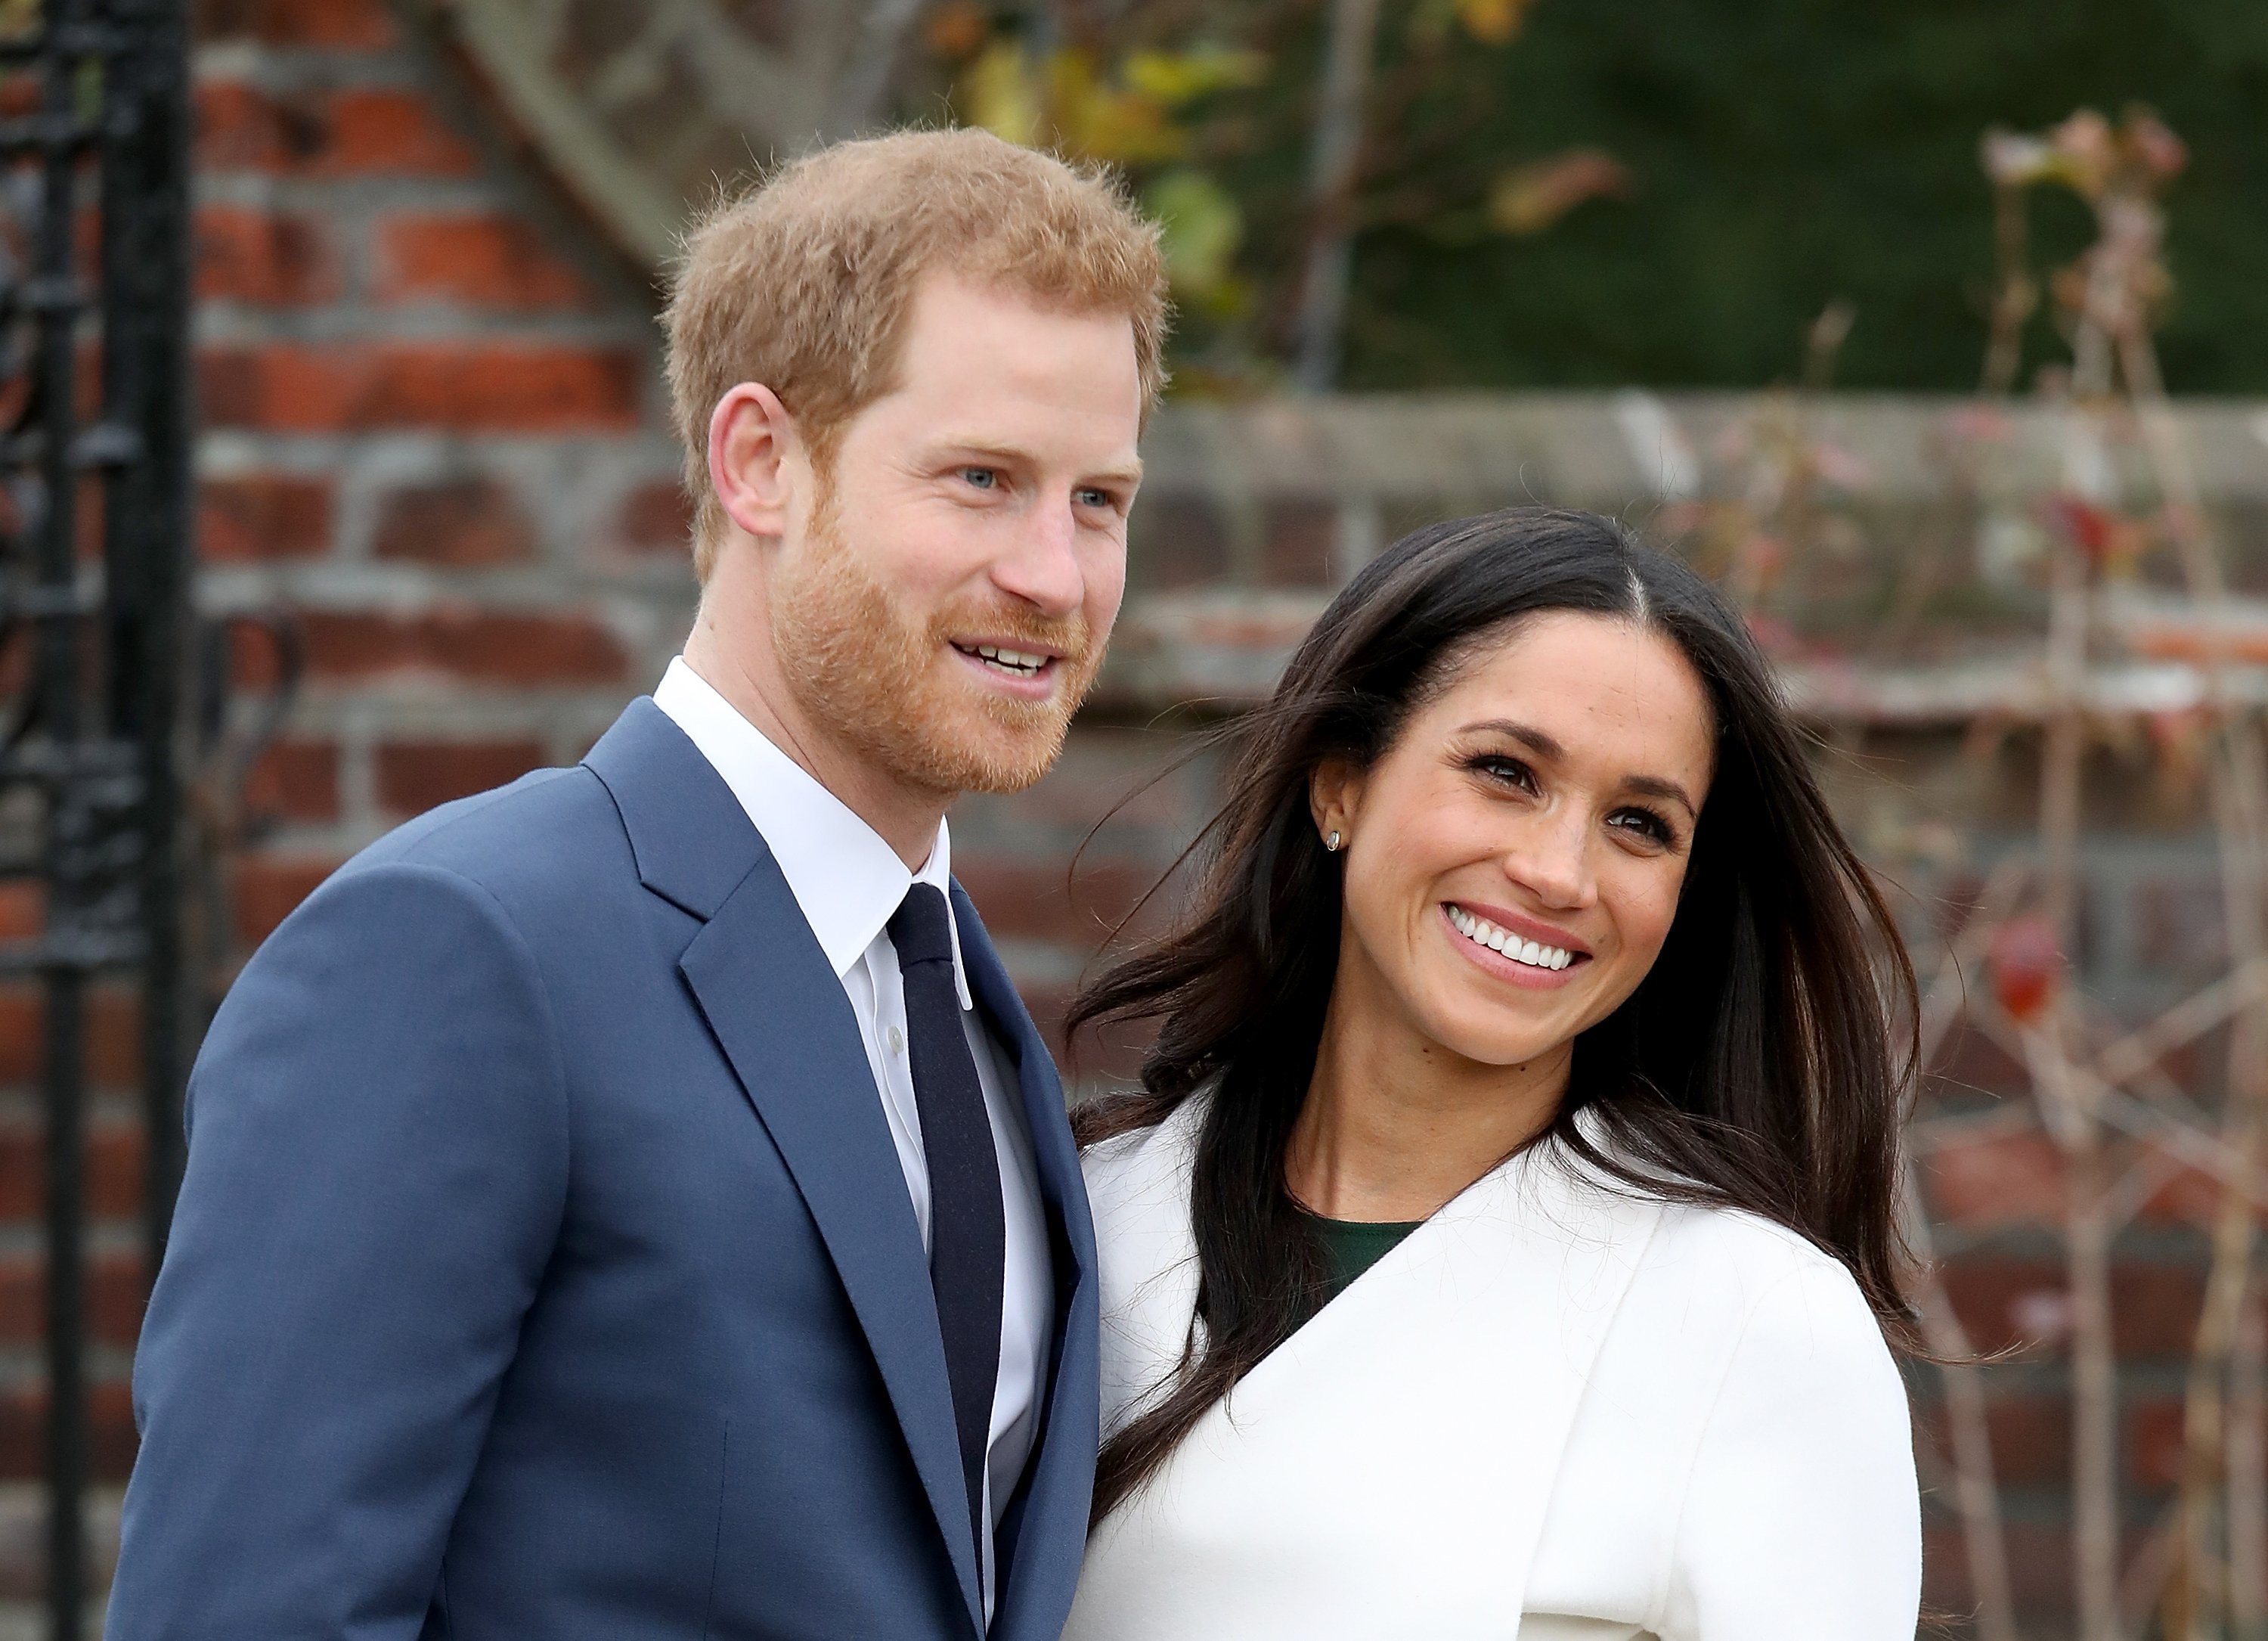 Prince Harry and actress Meghan Markle during an official photocall to announce their engagement at The Sunken Gardens at Kensington Palace on November 27, 2017 in London, England.  Source: Getty Images